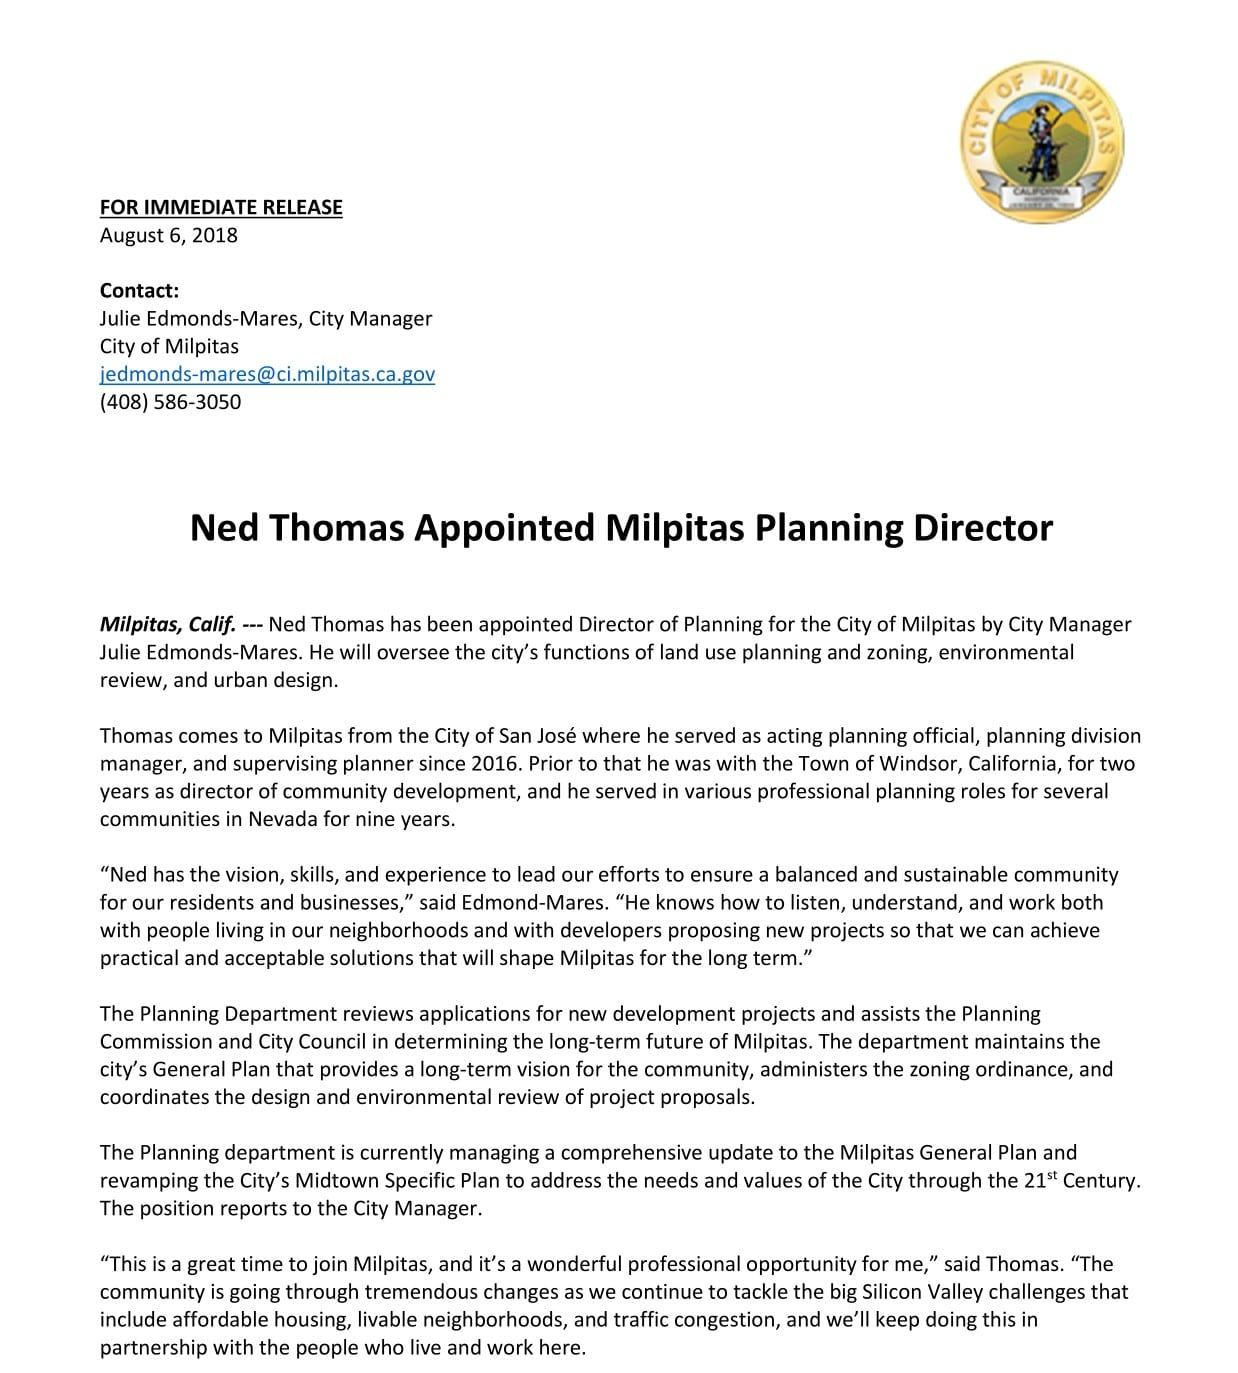 Ned Thomas Appointed Milpitas Planning Director | City of Milpitas